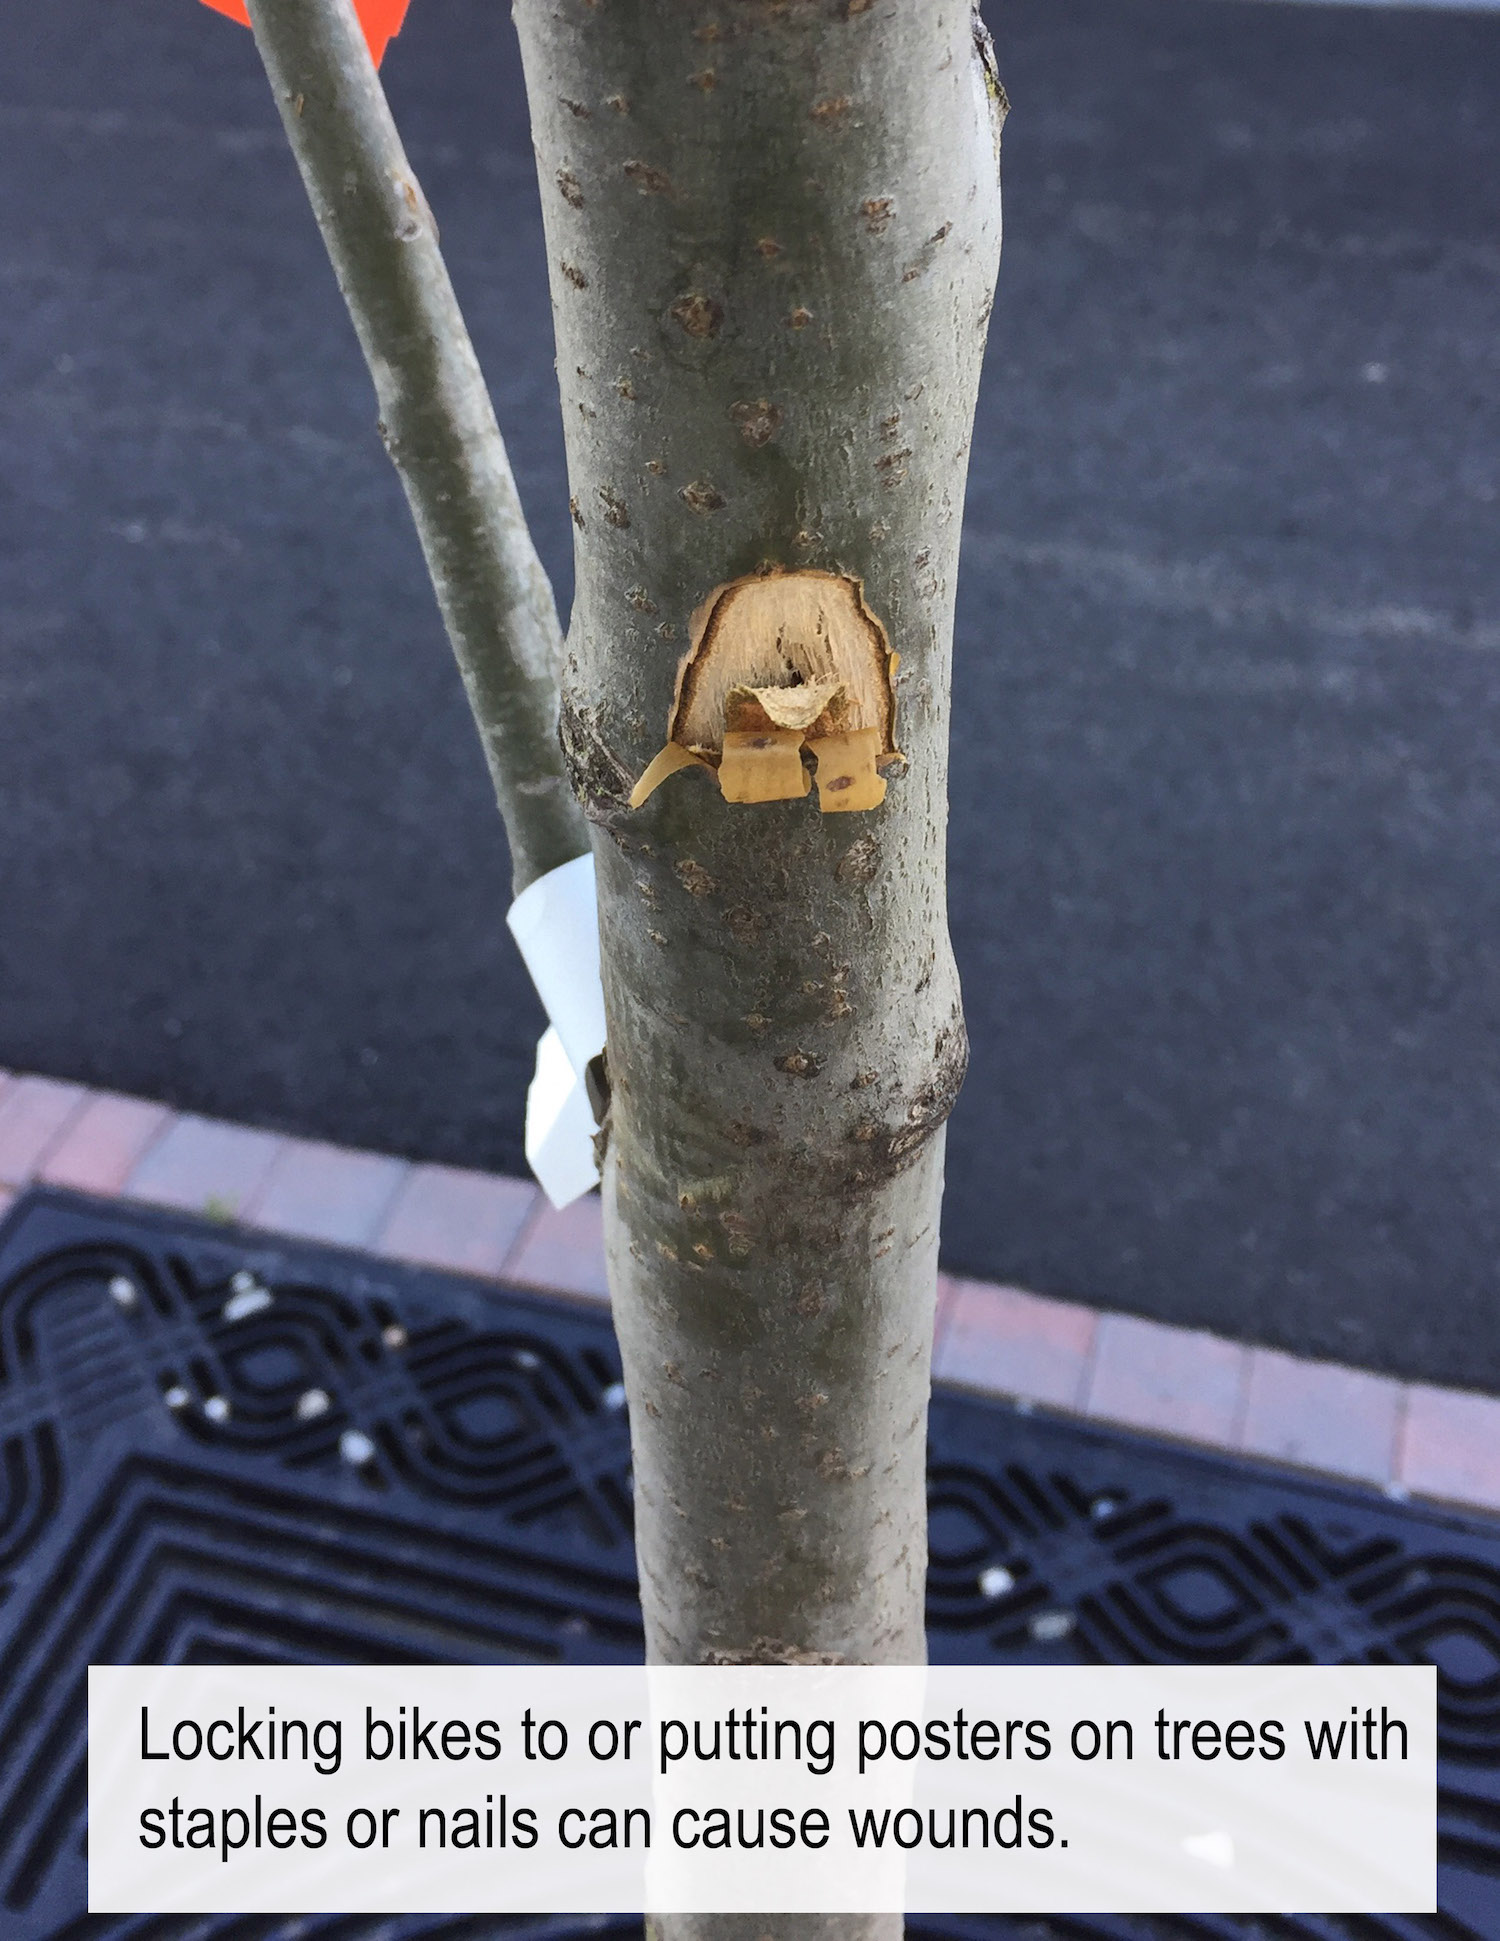 Locking bikes to, or putting posters on, trees with staples or nails can wound the tree.